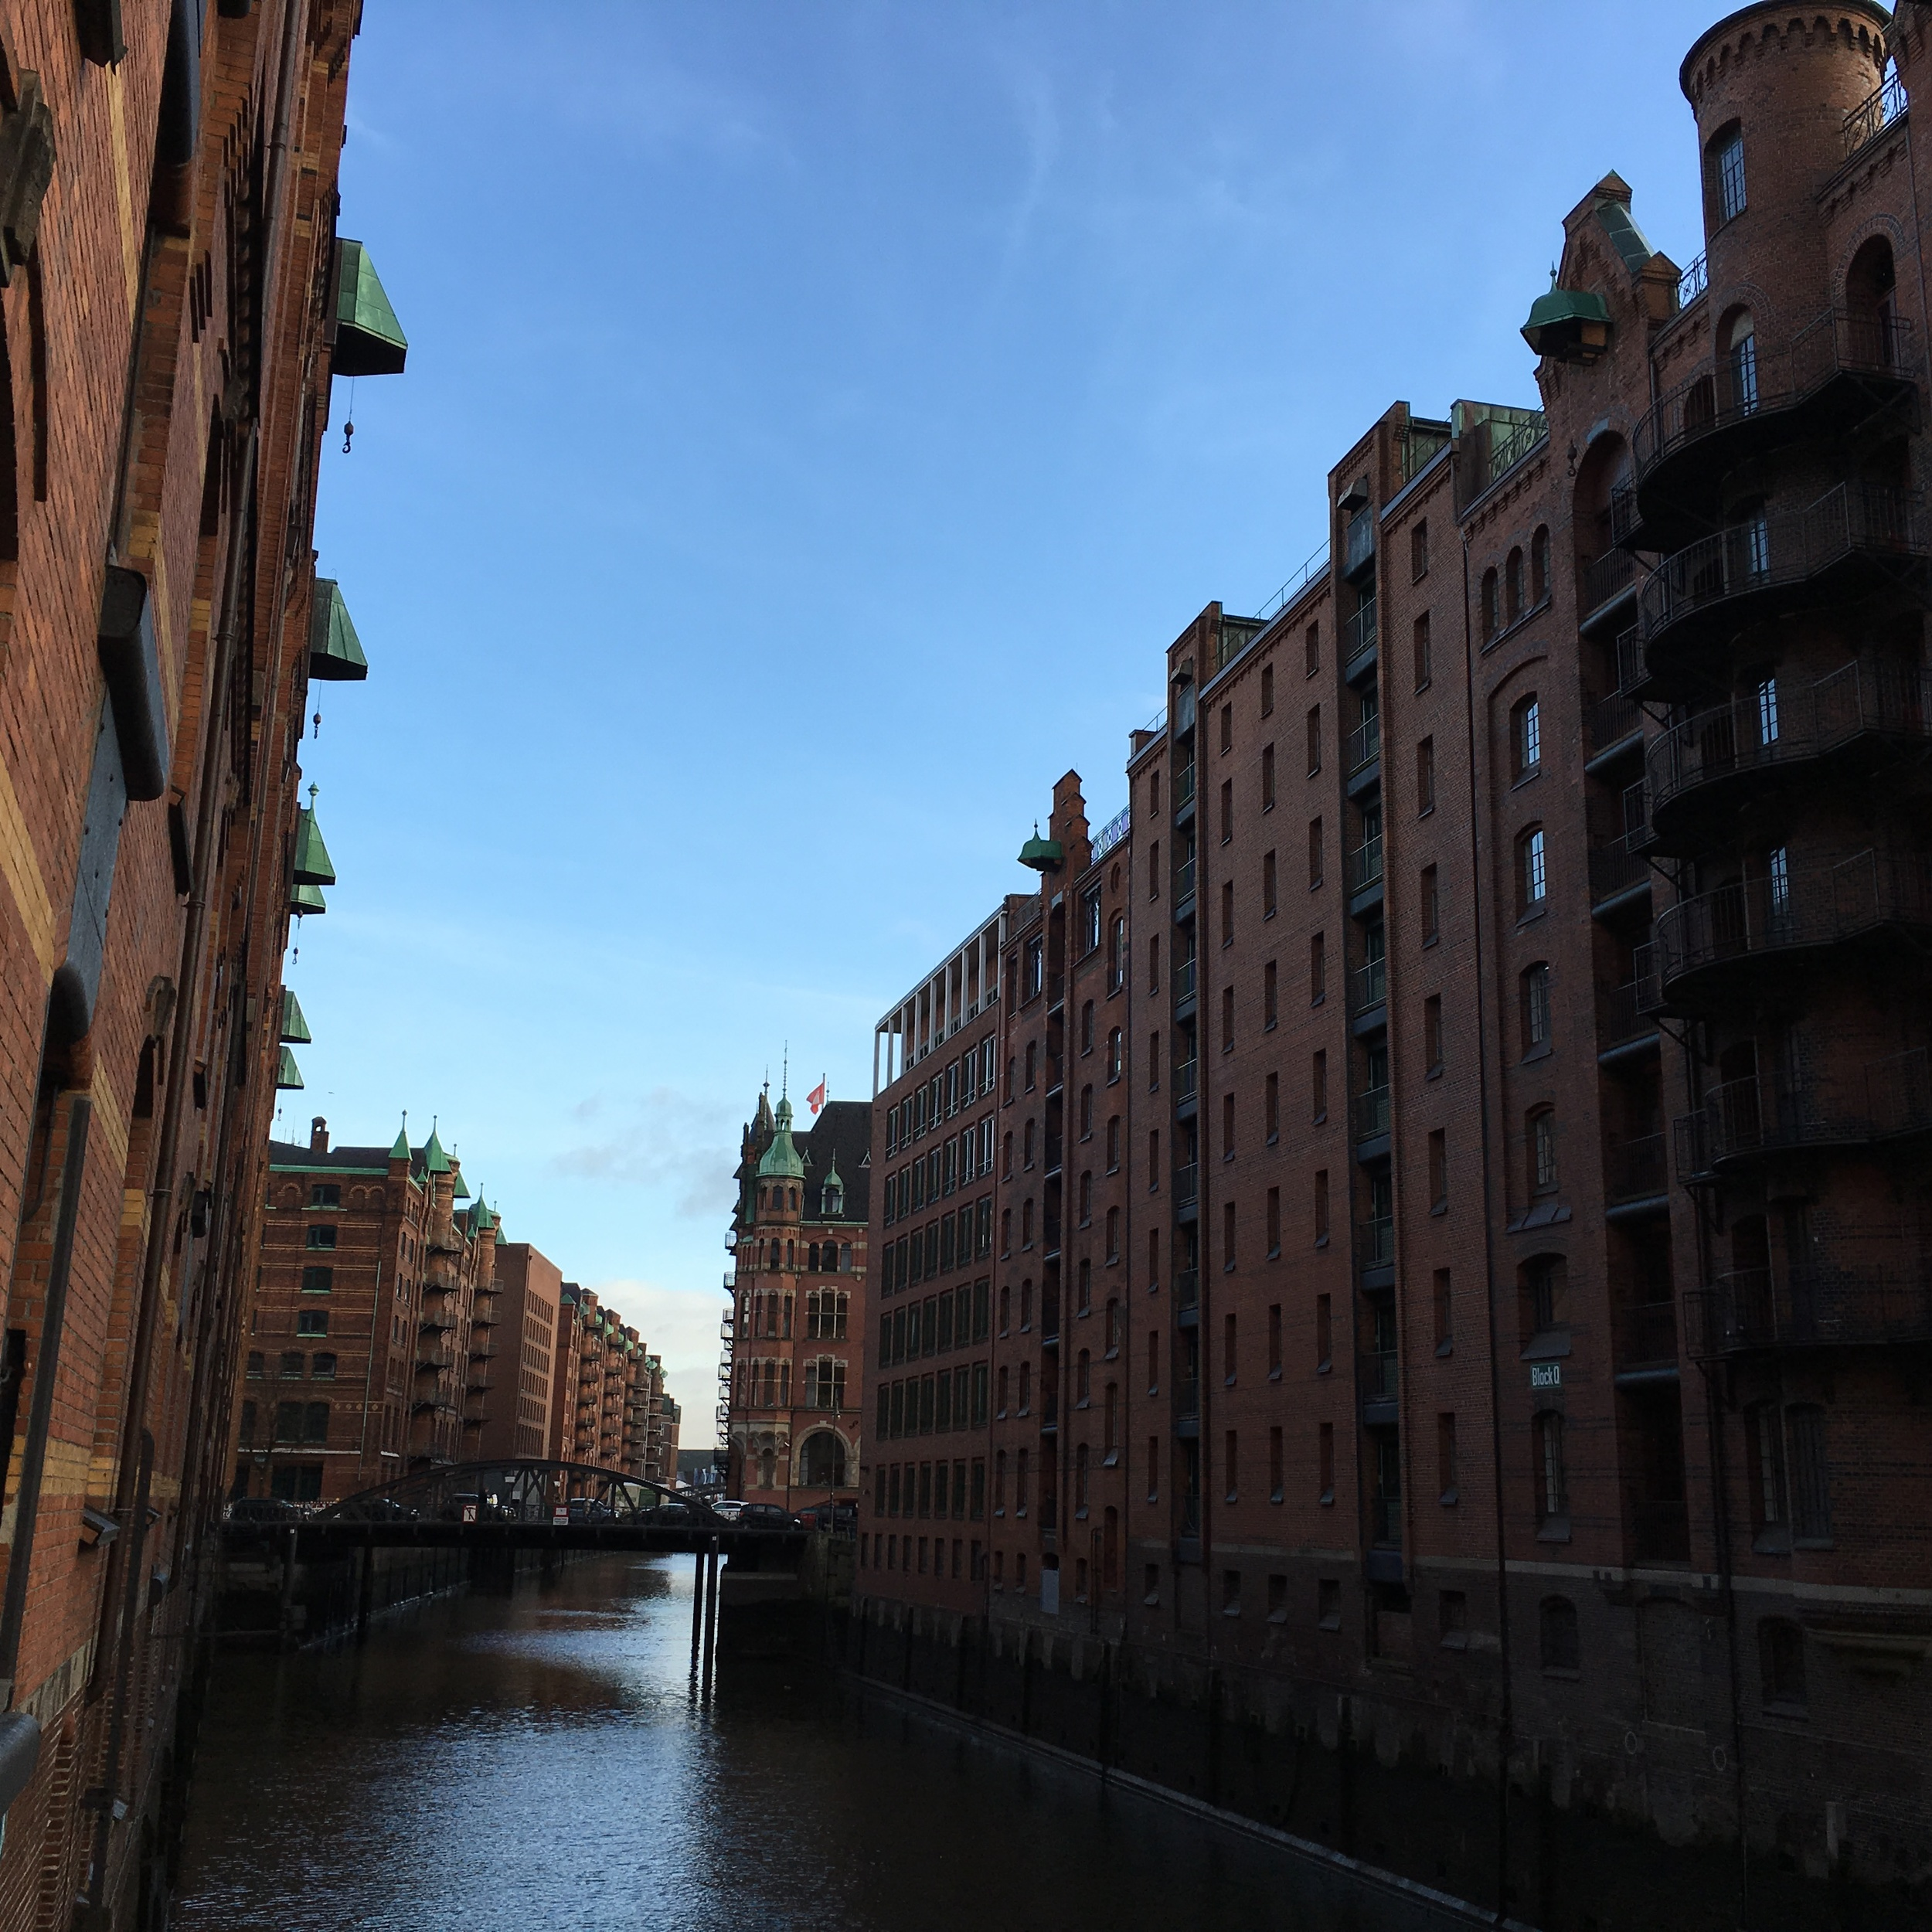 Spreicherstadt, the biggest warehouse district in the world. Photo: Bruny Nieves